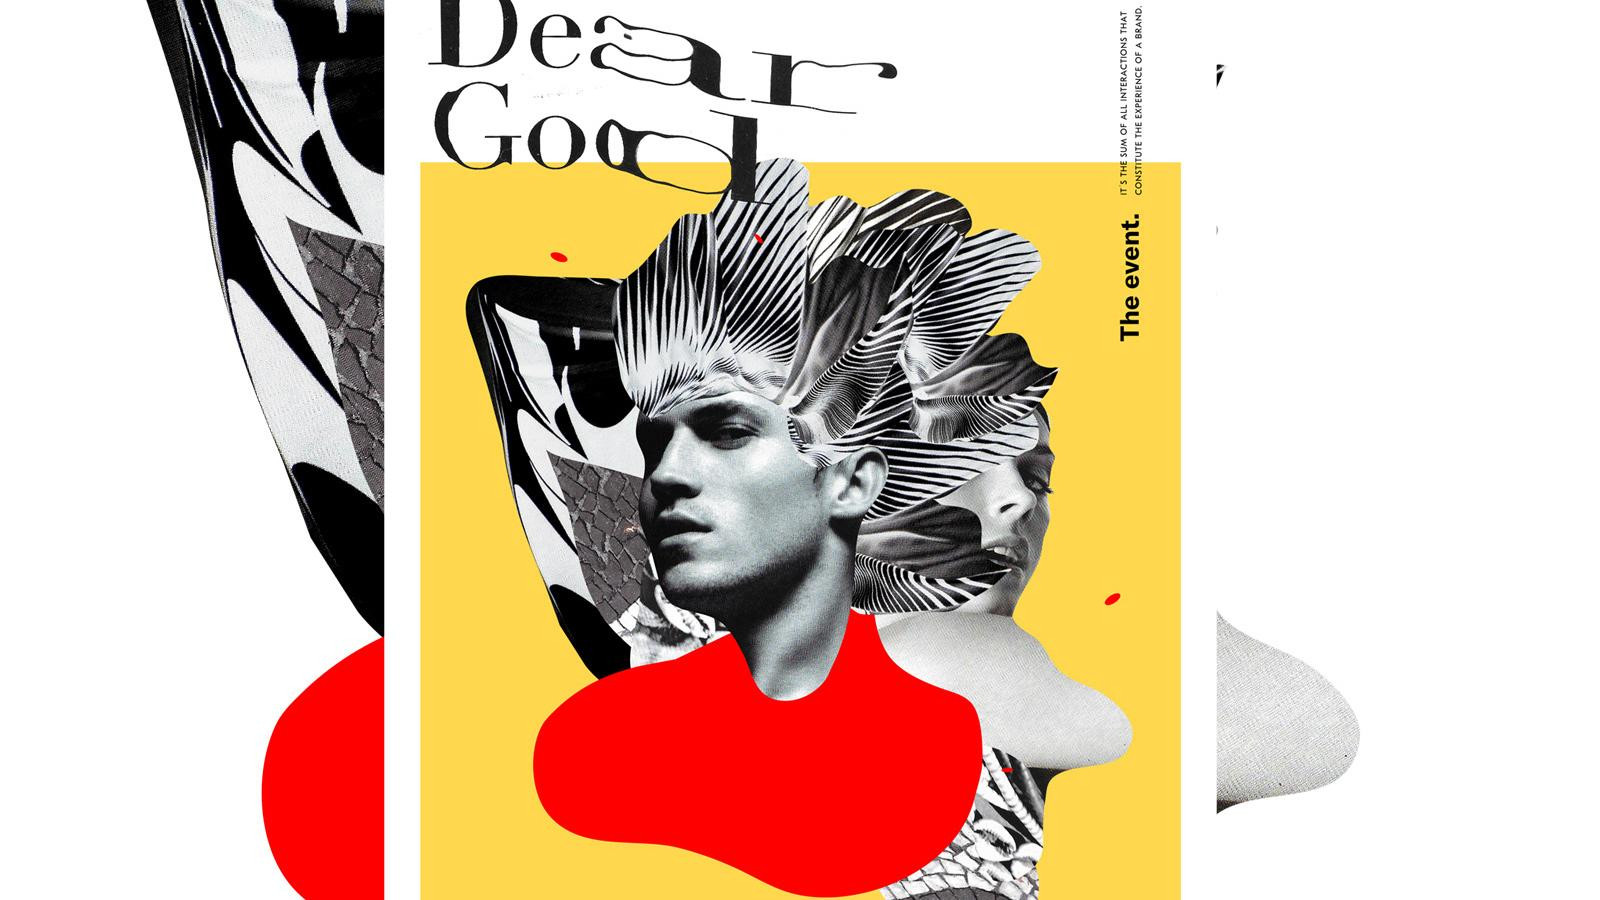 That 90s Look is Coming Back: Dear God Brand Identity